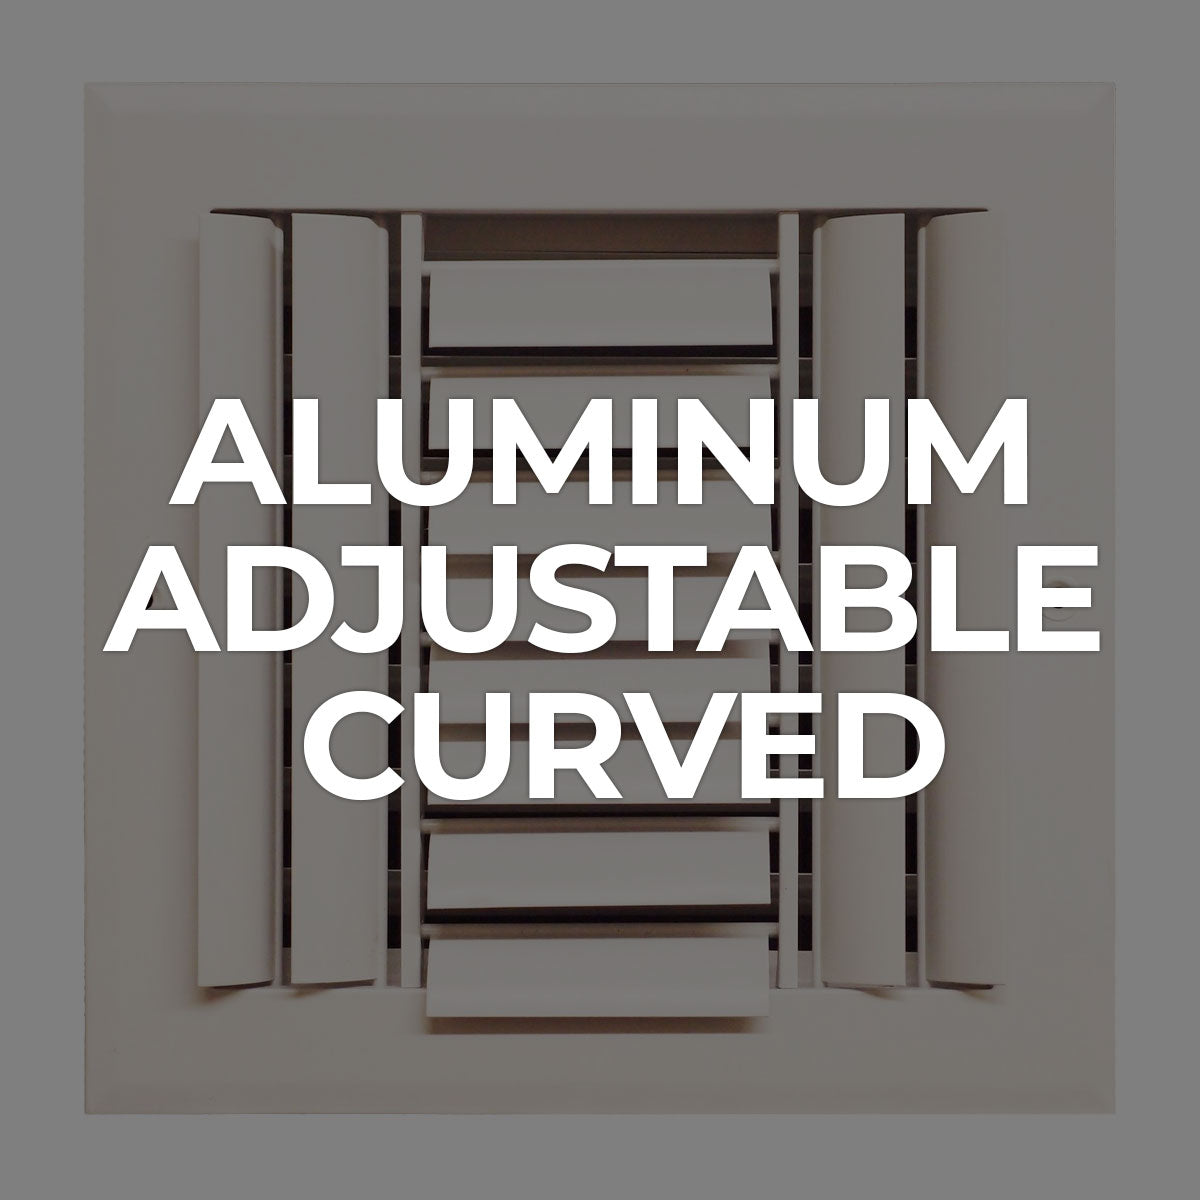 Supply / Aluminum Adjustable Curved